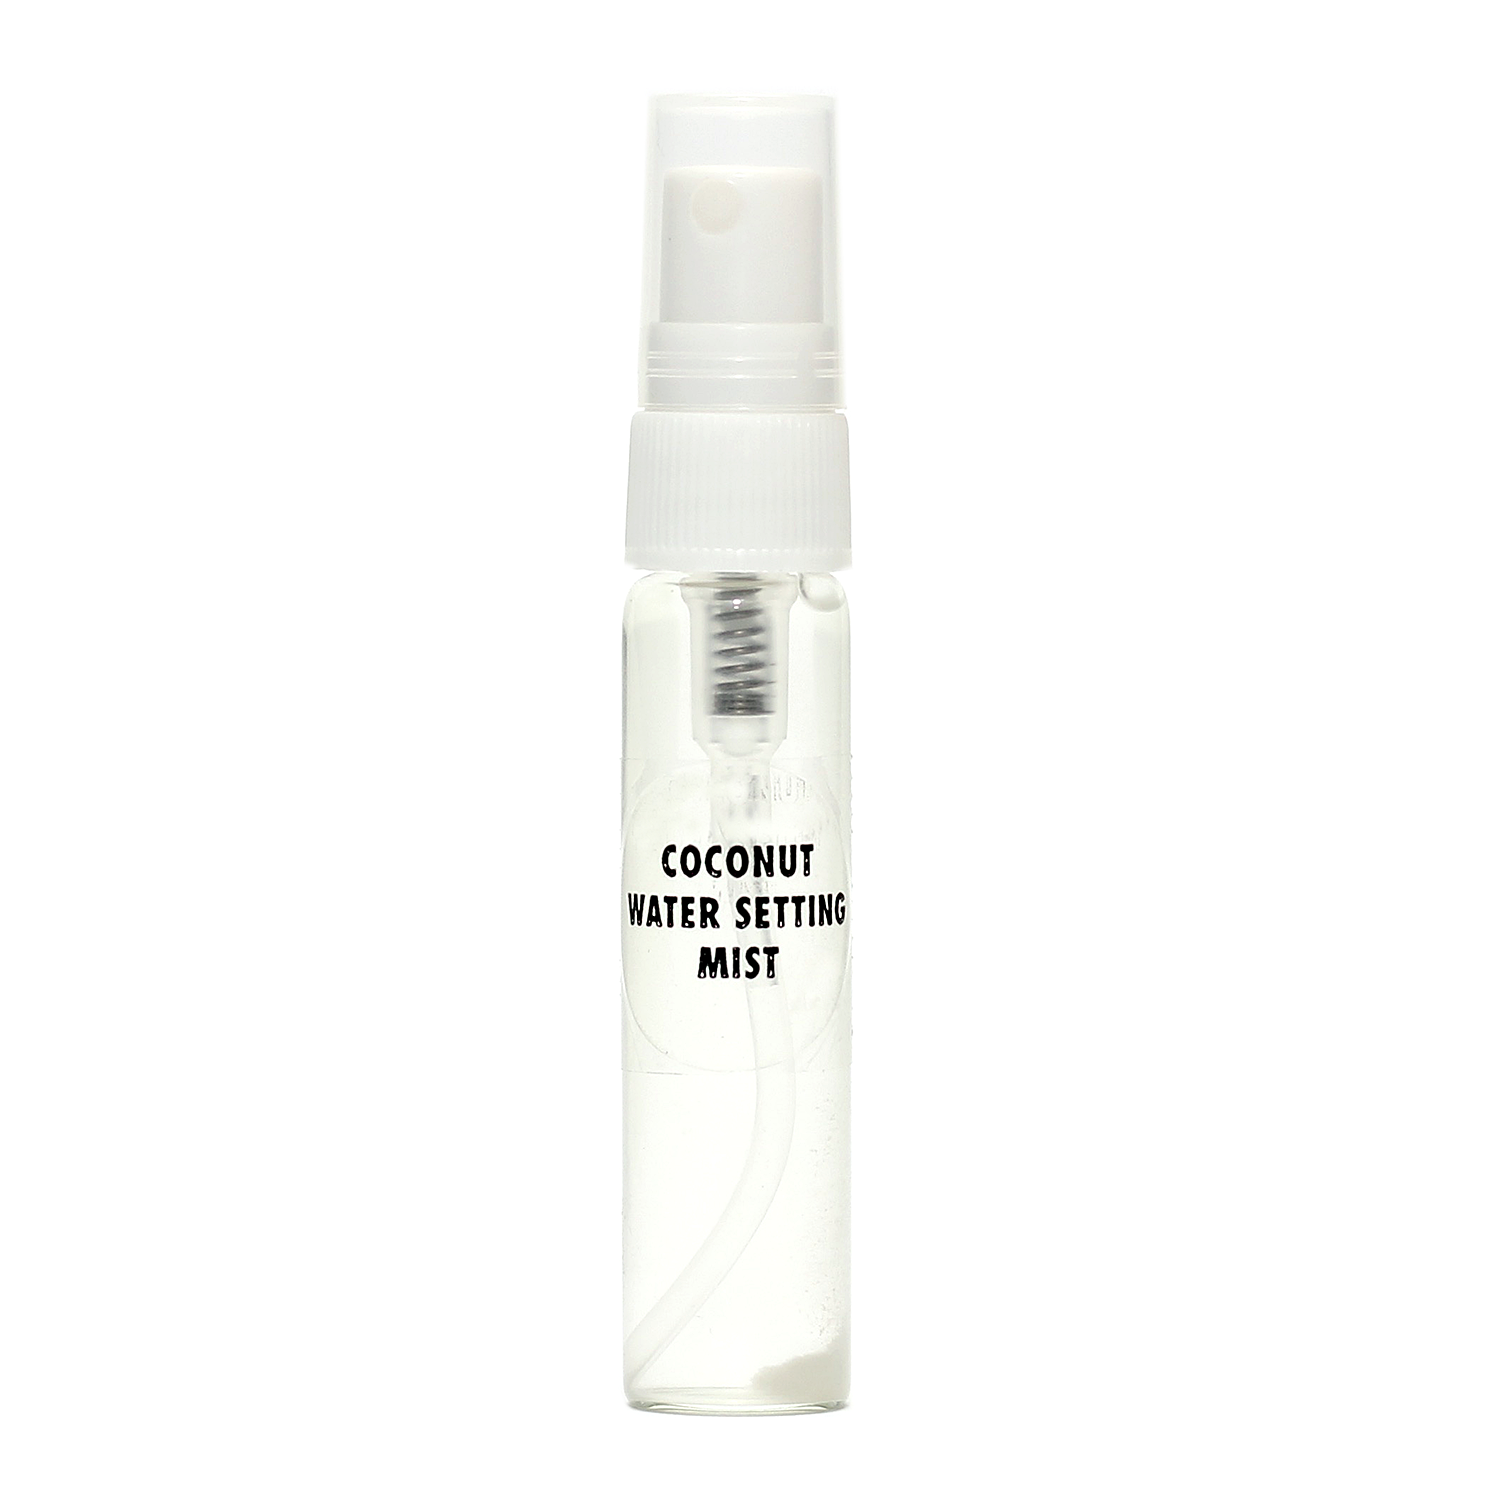 Coconut Water Setting Mist - SAMPLE